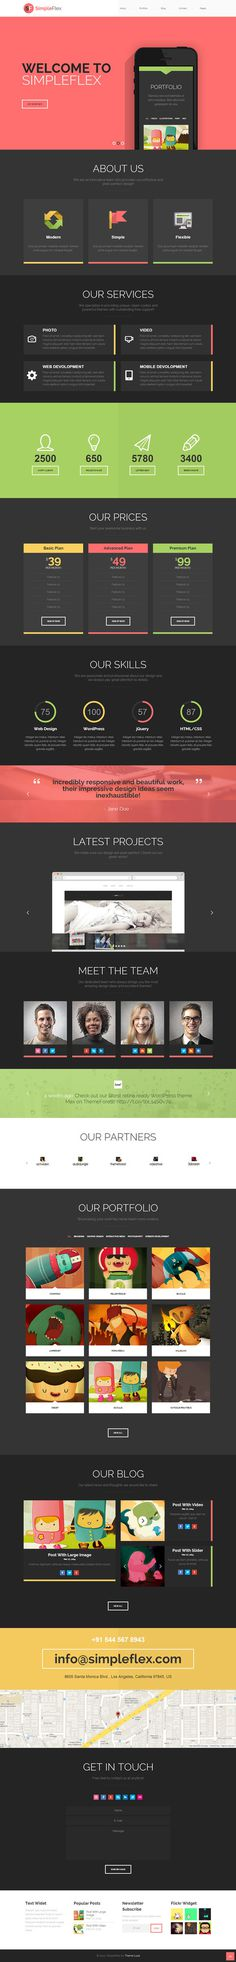 Flat One Page WordPress Theme #flat #page #design #colors #concept #web #one #layout #dark